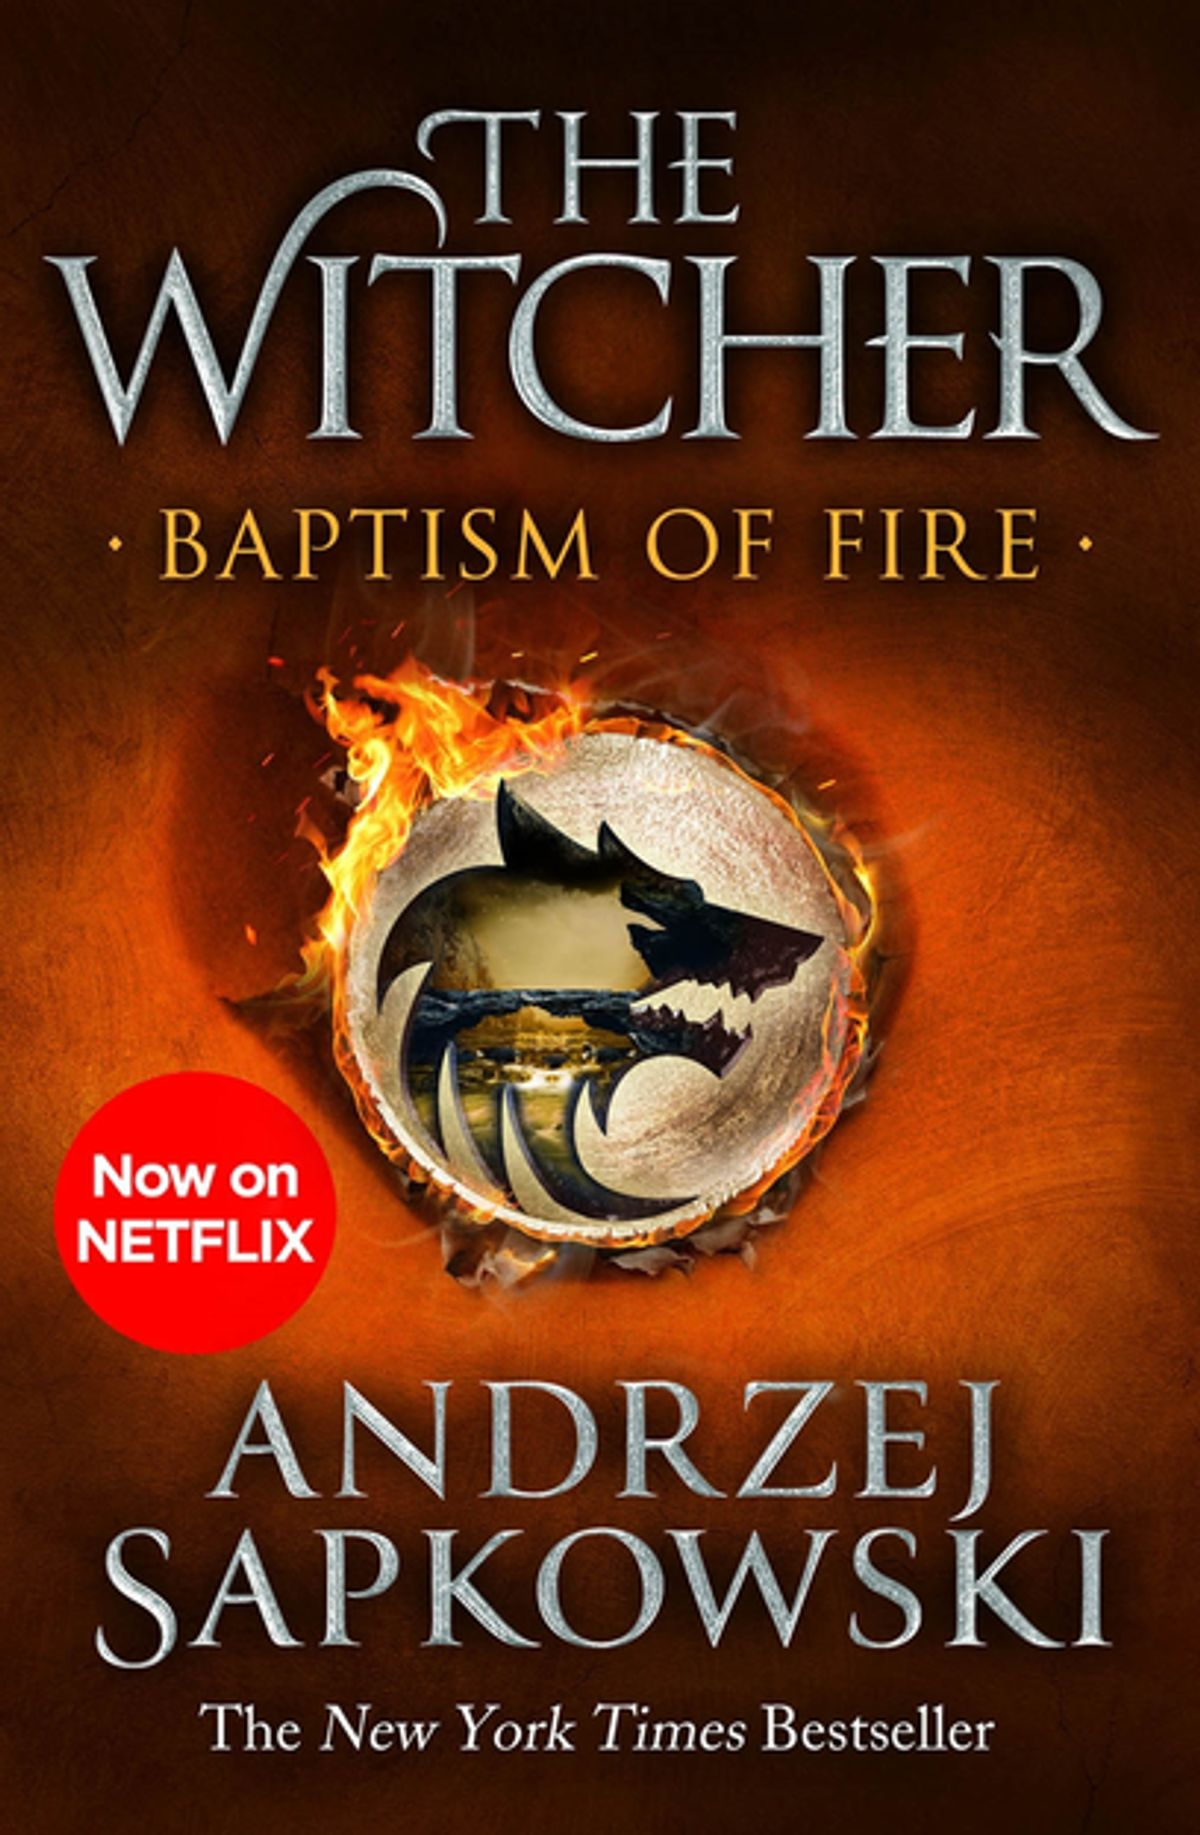 Baptism of Fire cover - The Witcher by Andrzej Sapkowski